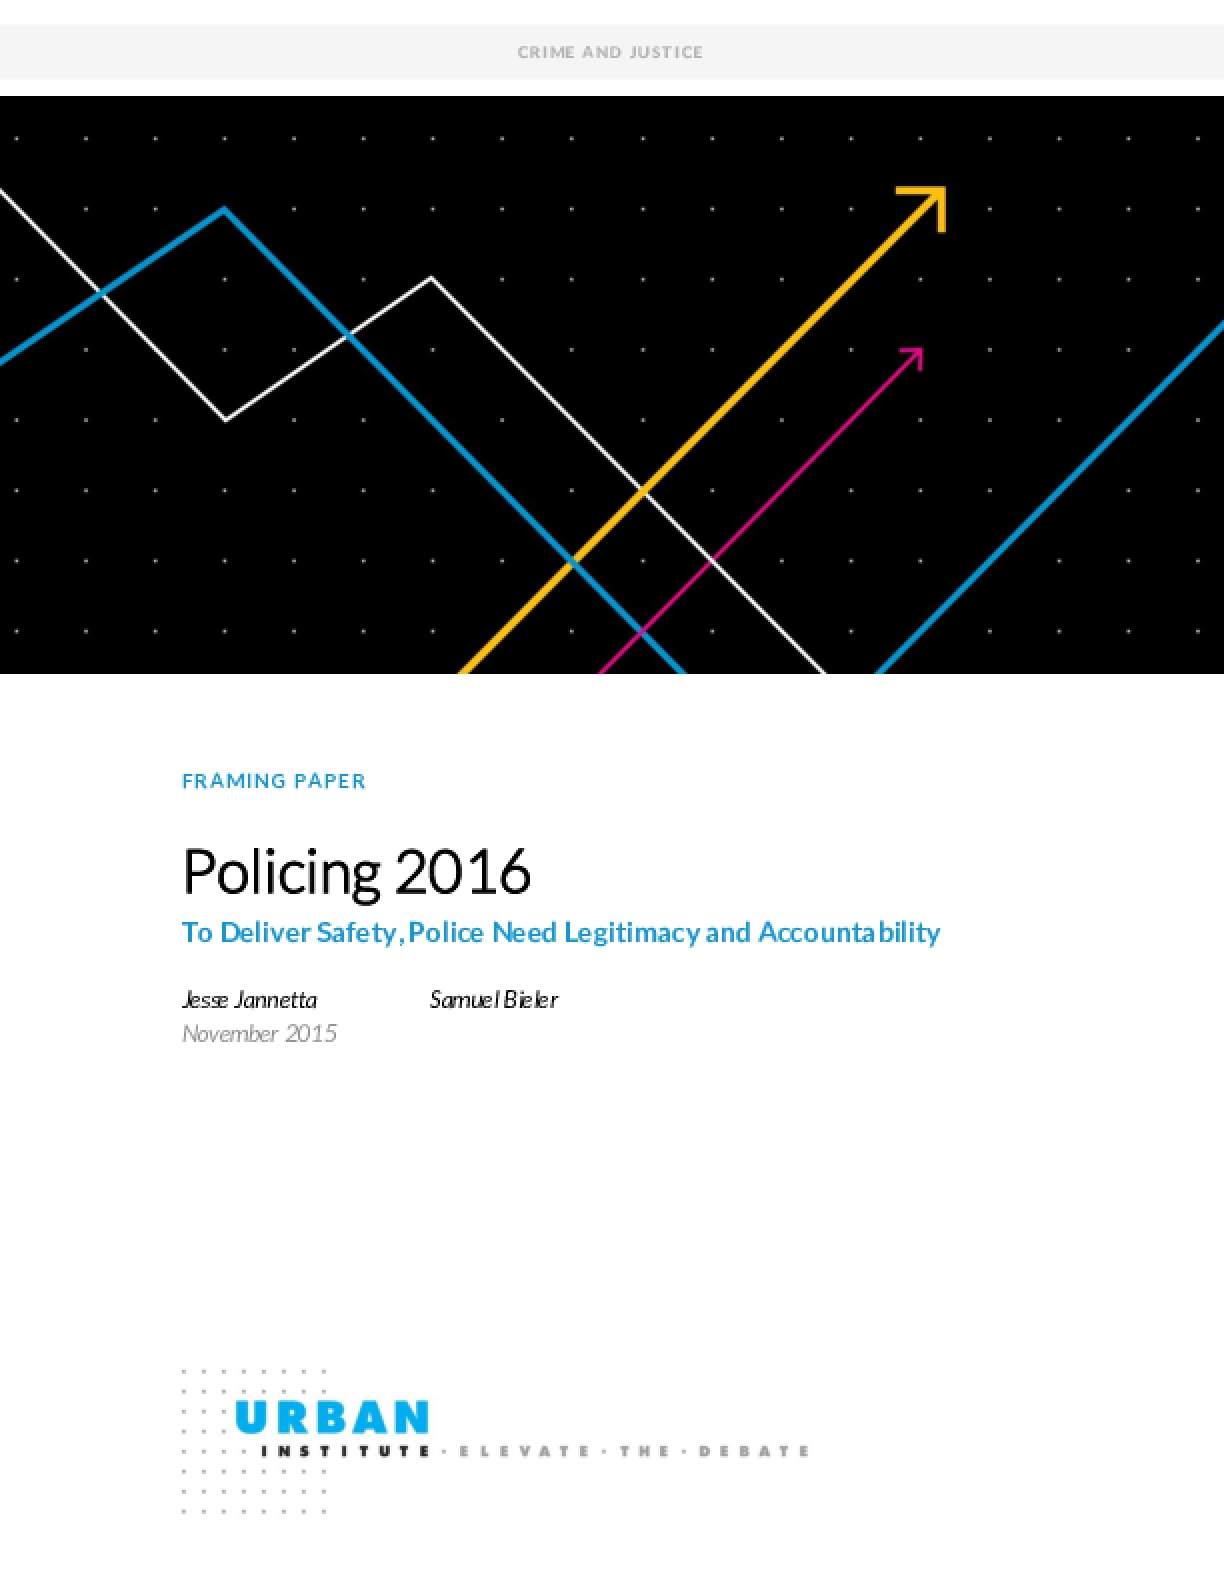 Policing 2016 To Deliver Safety, Police Need Legitimacy and Accountability